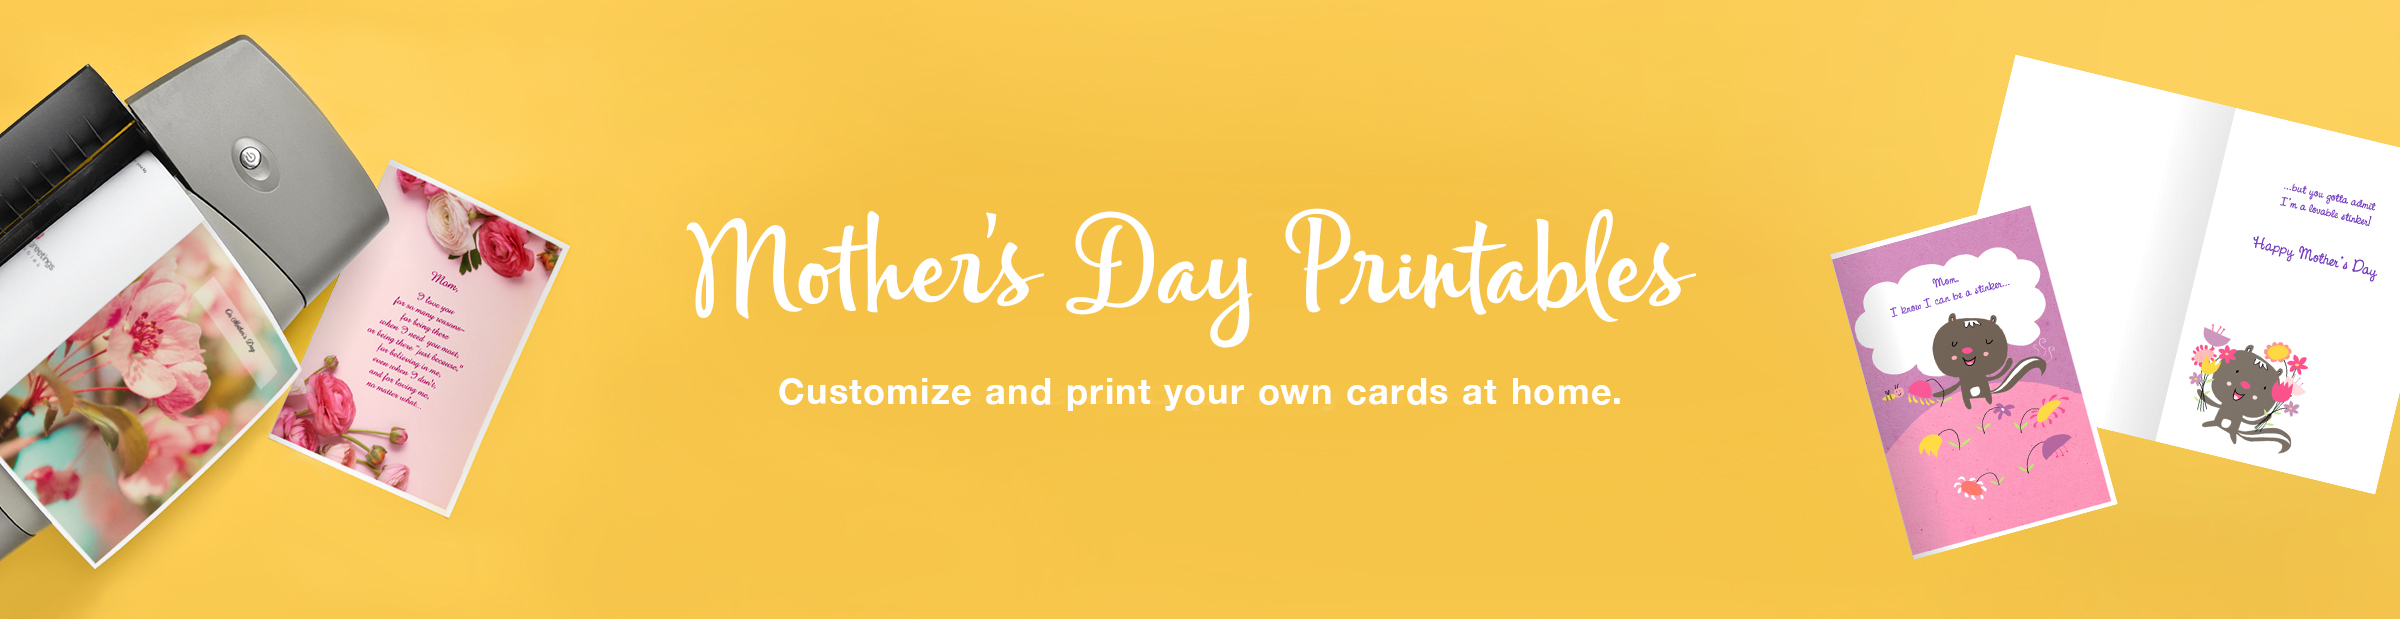 Mother's Day Printable Cards and a Printer